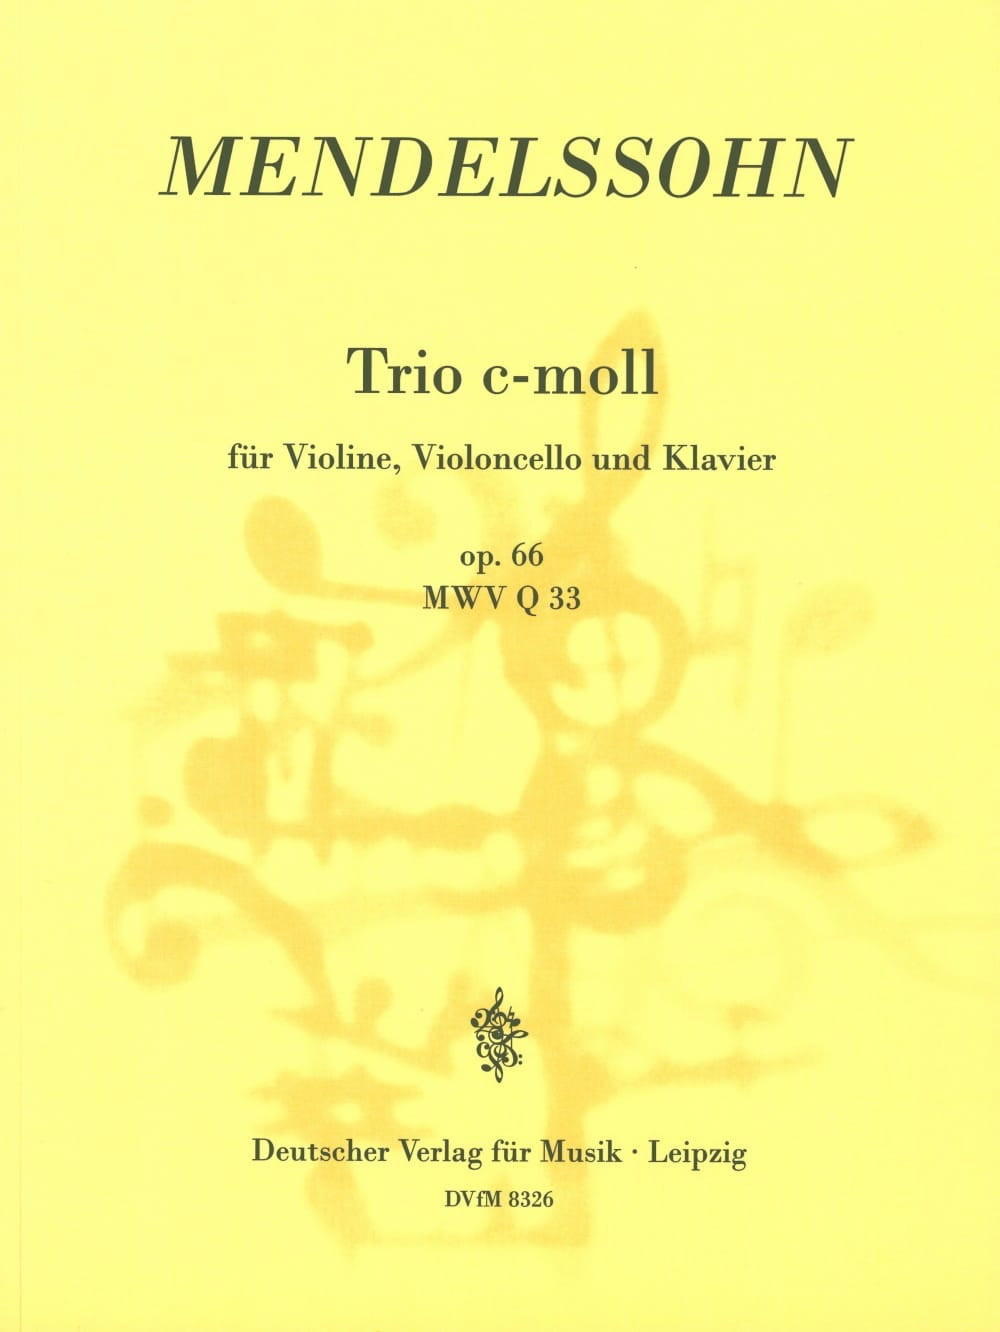 MENDELSSOHN - Klaviertrio c-moll op. 66 - Partition - di-arezzo.co.uk